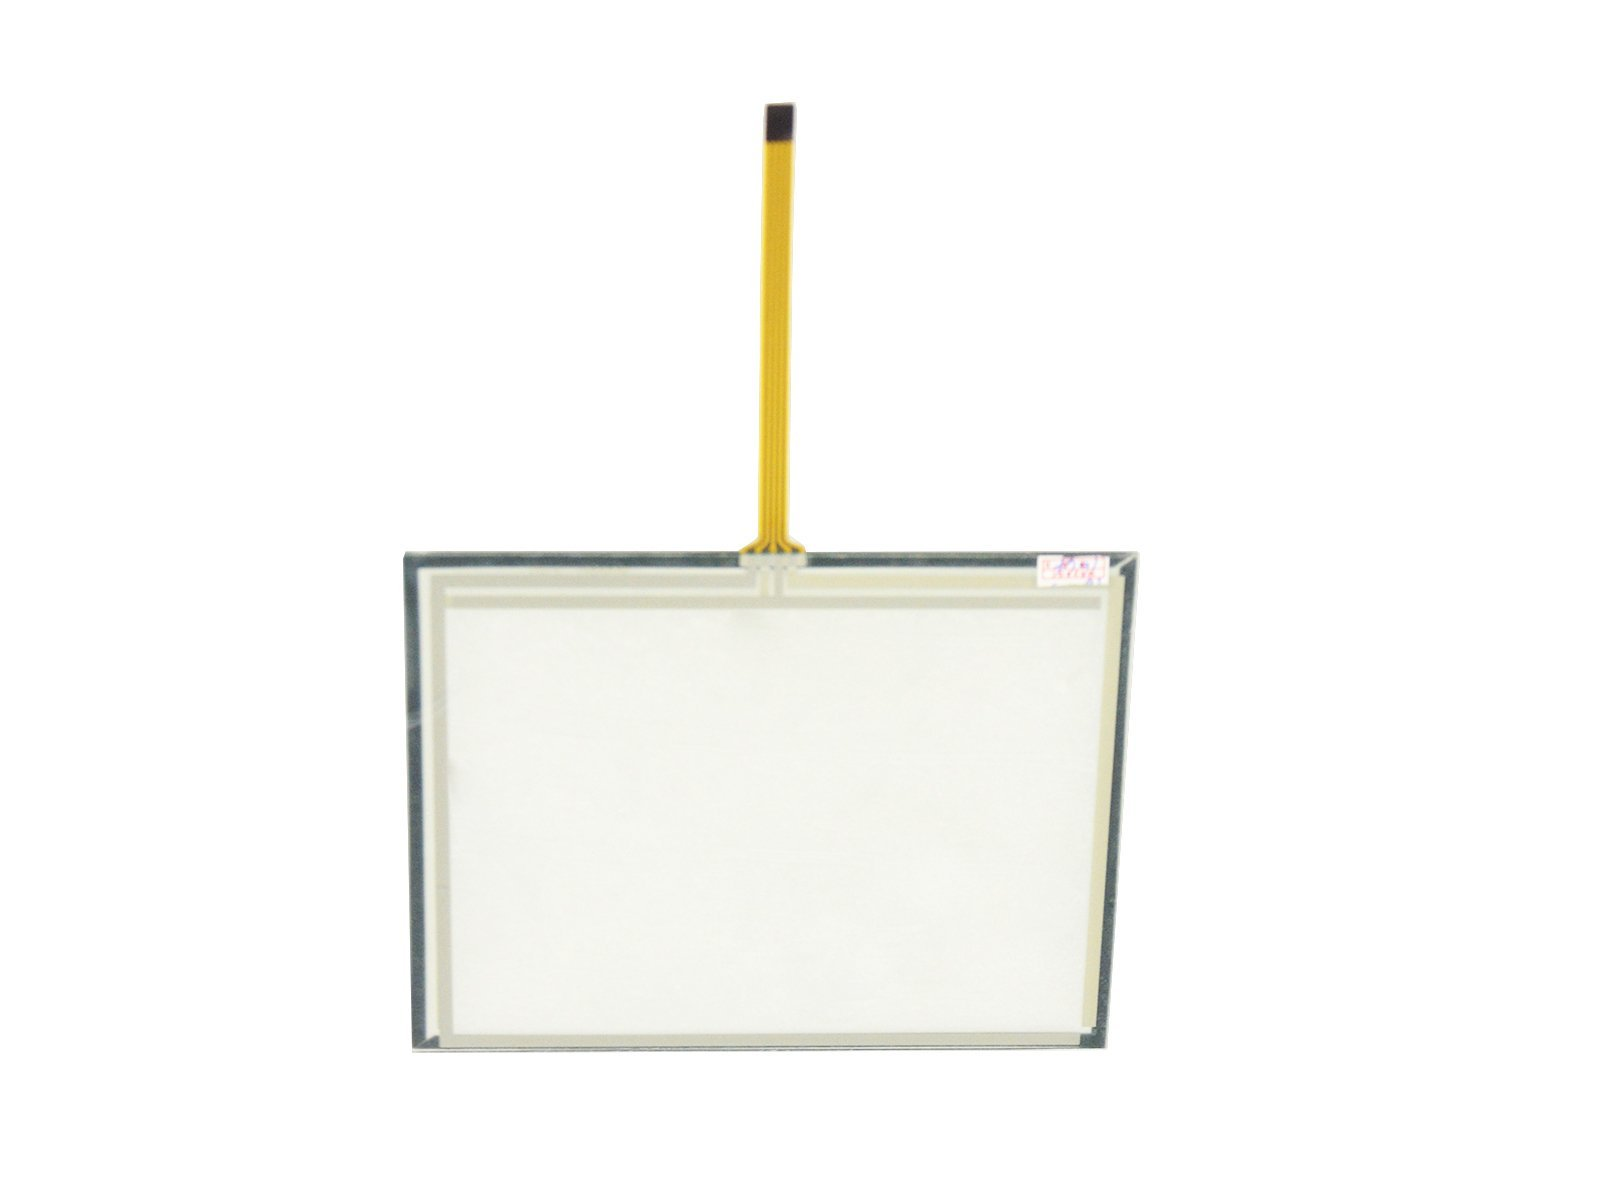 NJYTouch 5.6inch 4 Wire Resistive Touch Panel Digitizer 126x100mm For 5.6 inch AT056TN52 AT056TN53 LCD Screen With 4 Wire USB Driver Controller Kit by NJYTouch (Image #3)